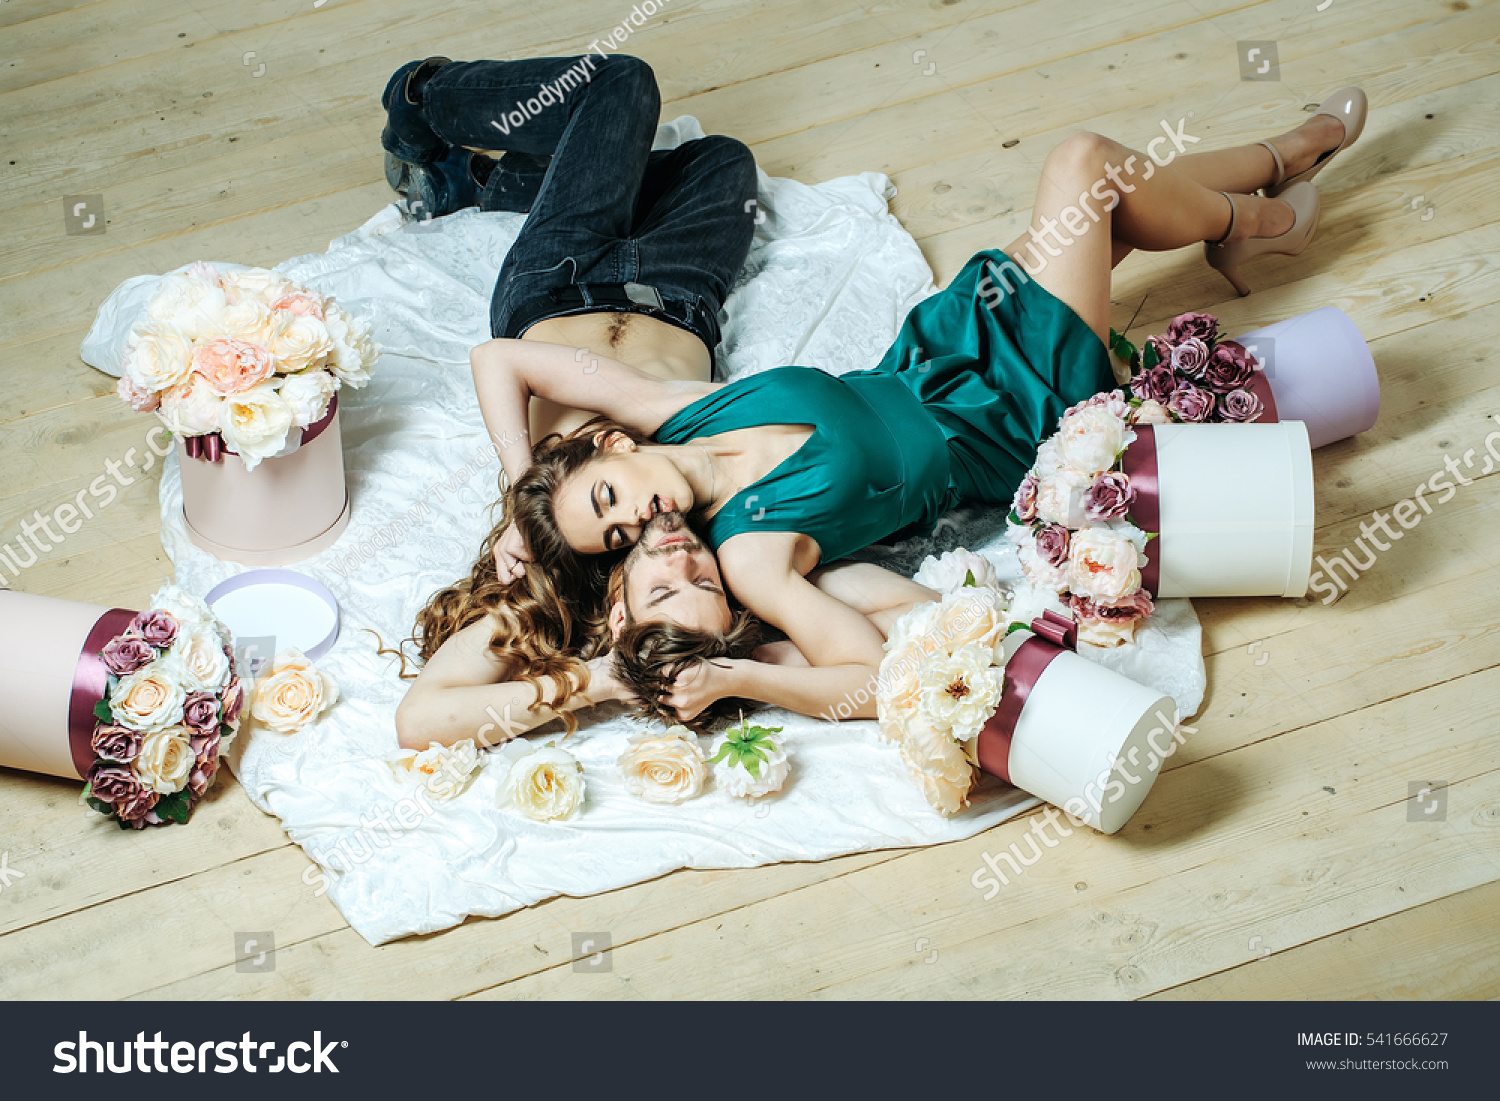 Sexy Couple Young Beautiful Cute Lovers Stock Photo -2080